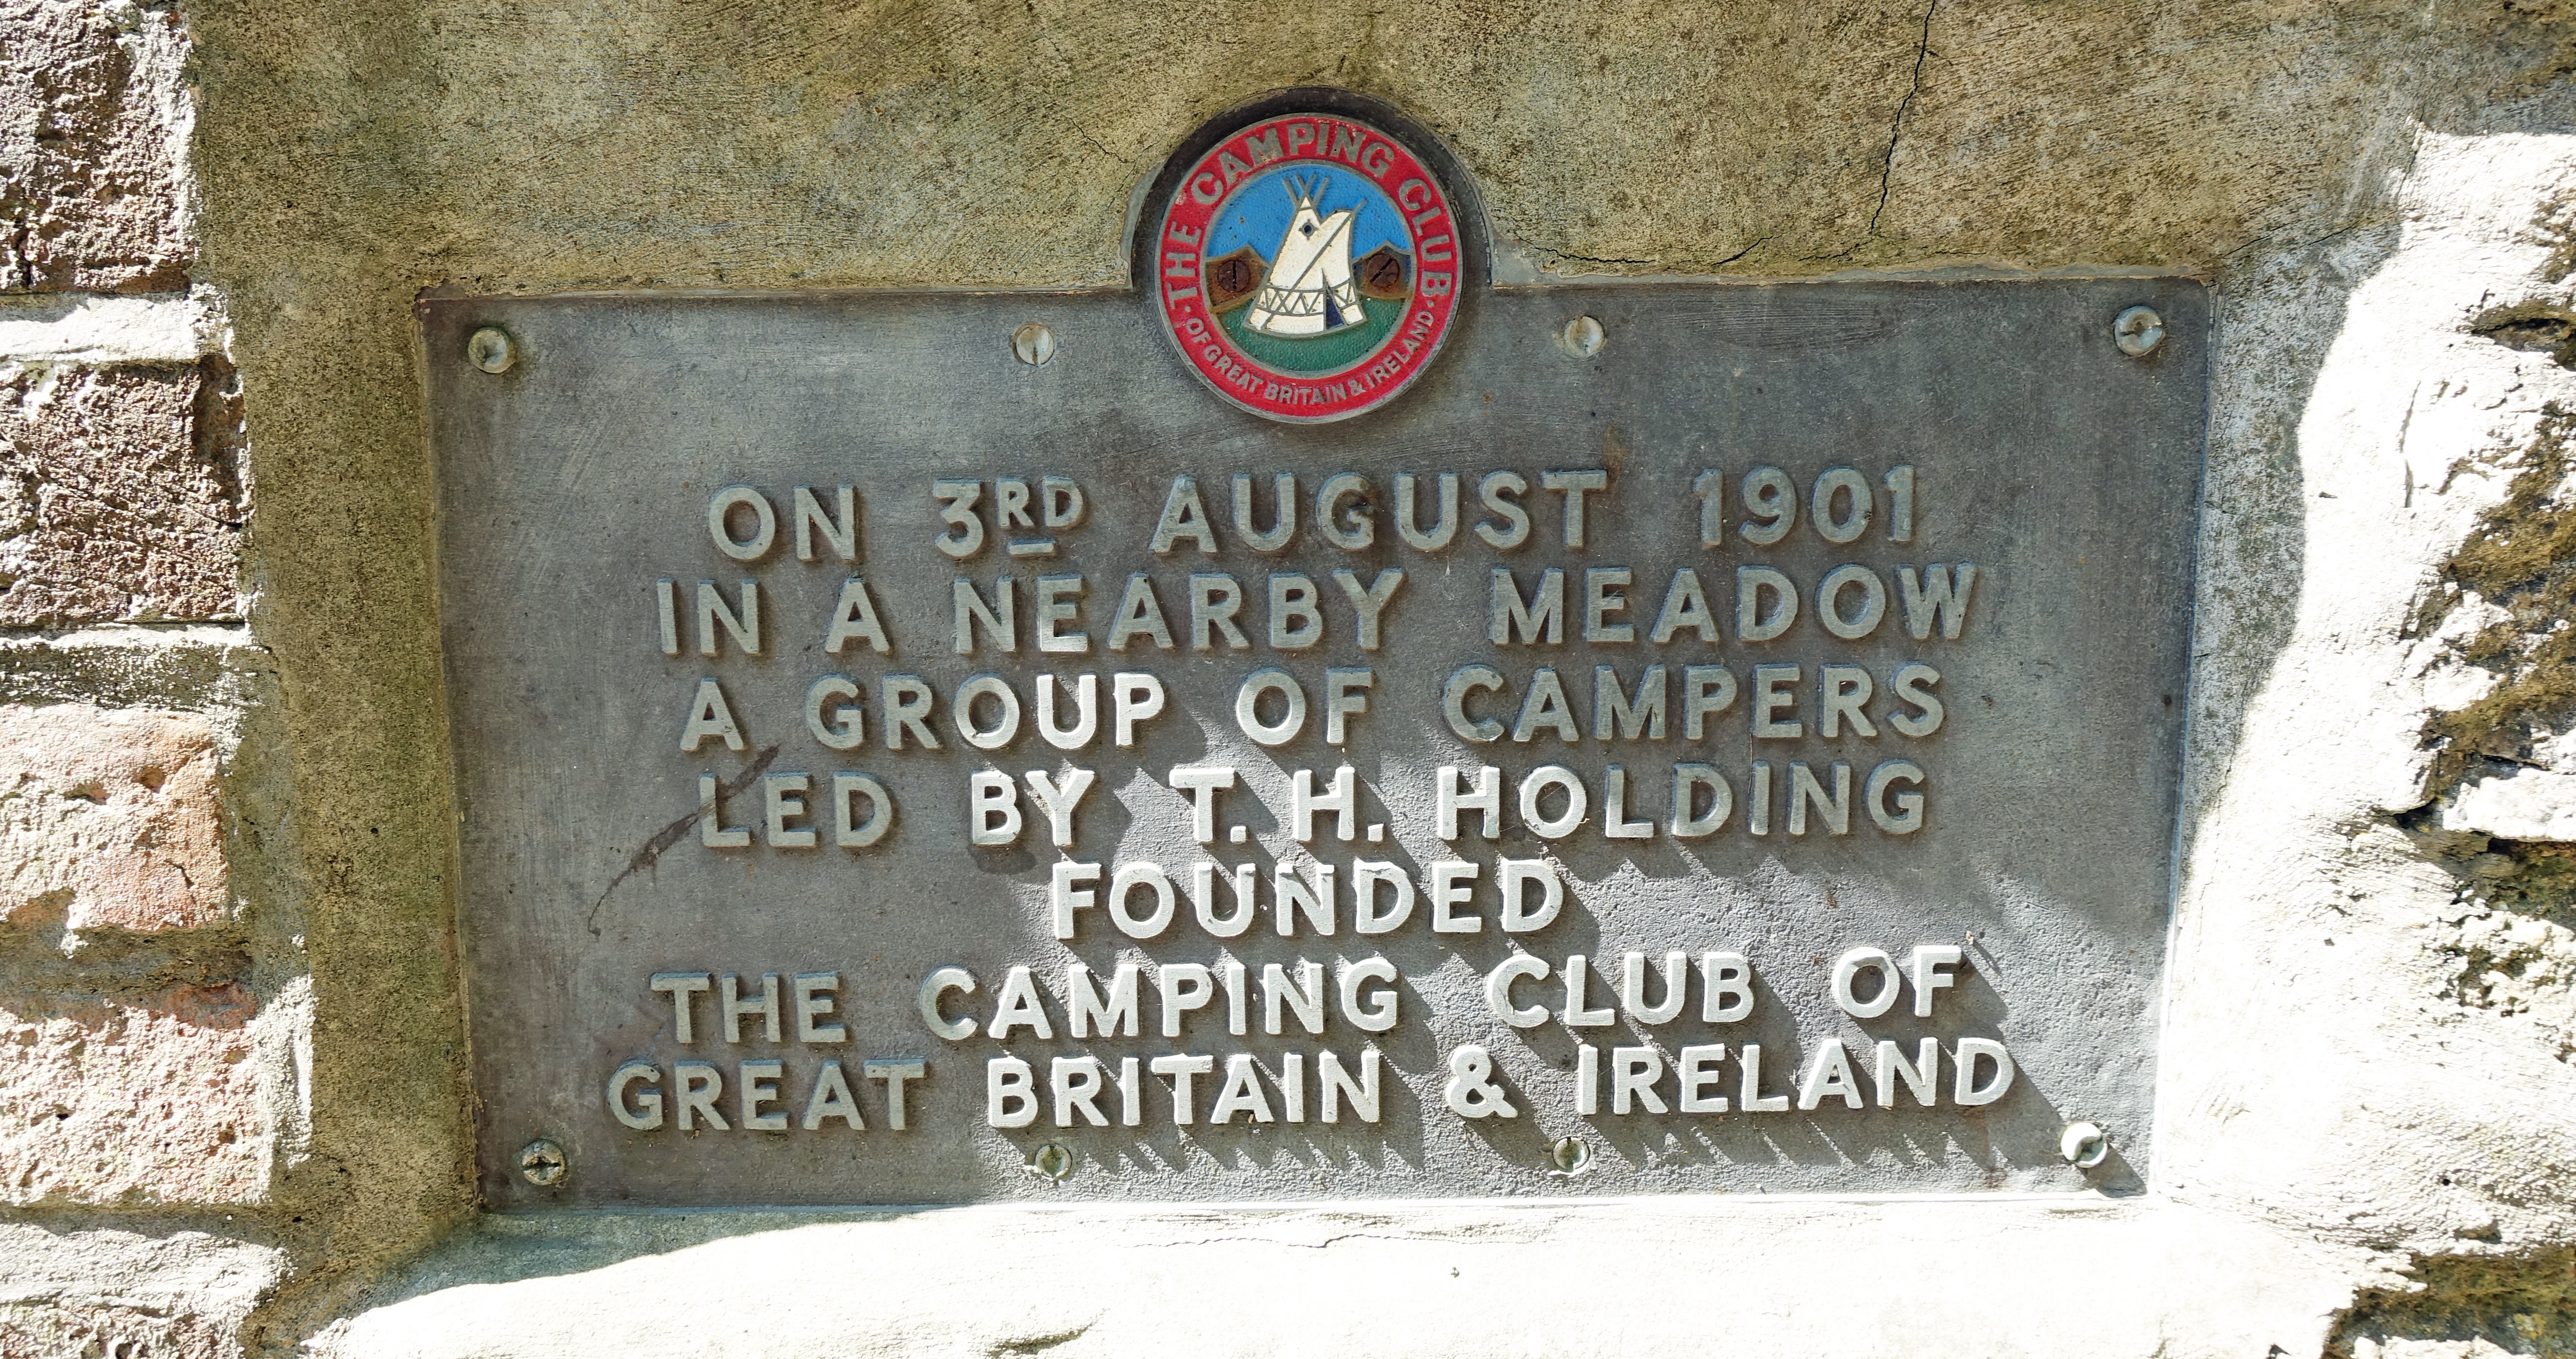 Commemorative plaque recording the creation of The Camping Club,affixed to bridge 58 near Wantage, Berks